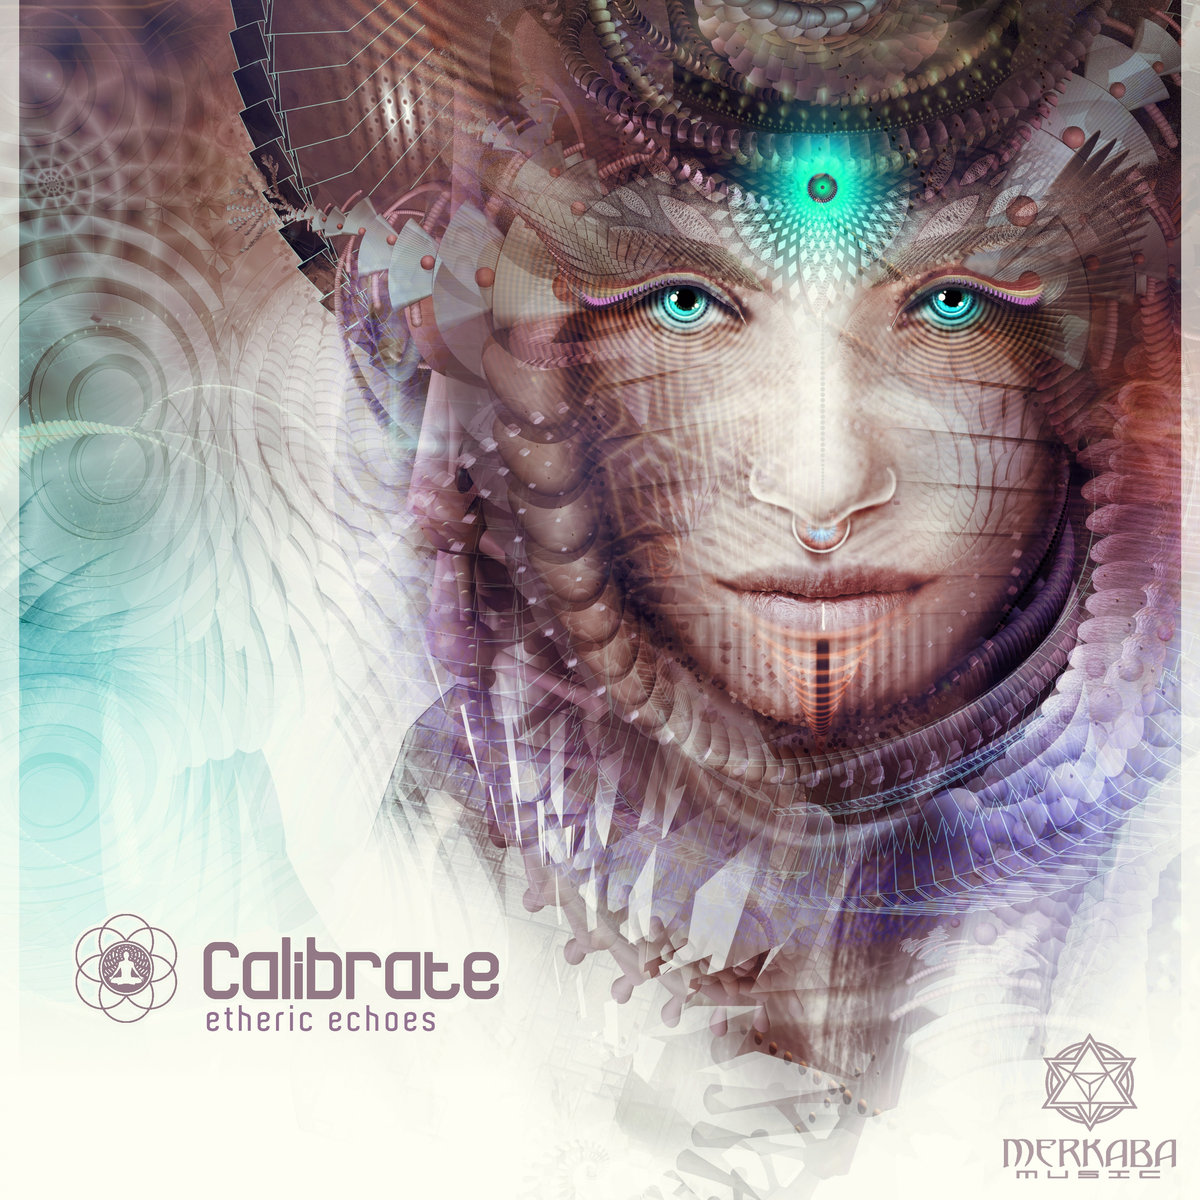 Calibrate - Etheric Echoes